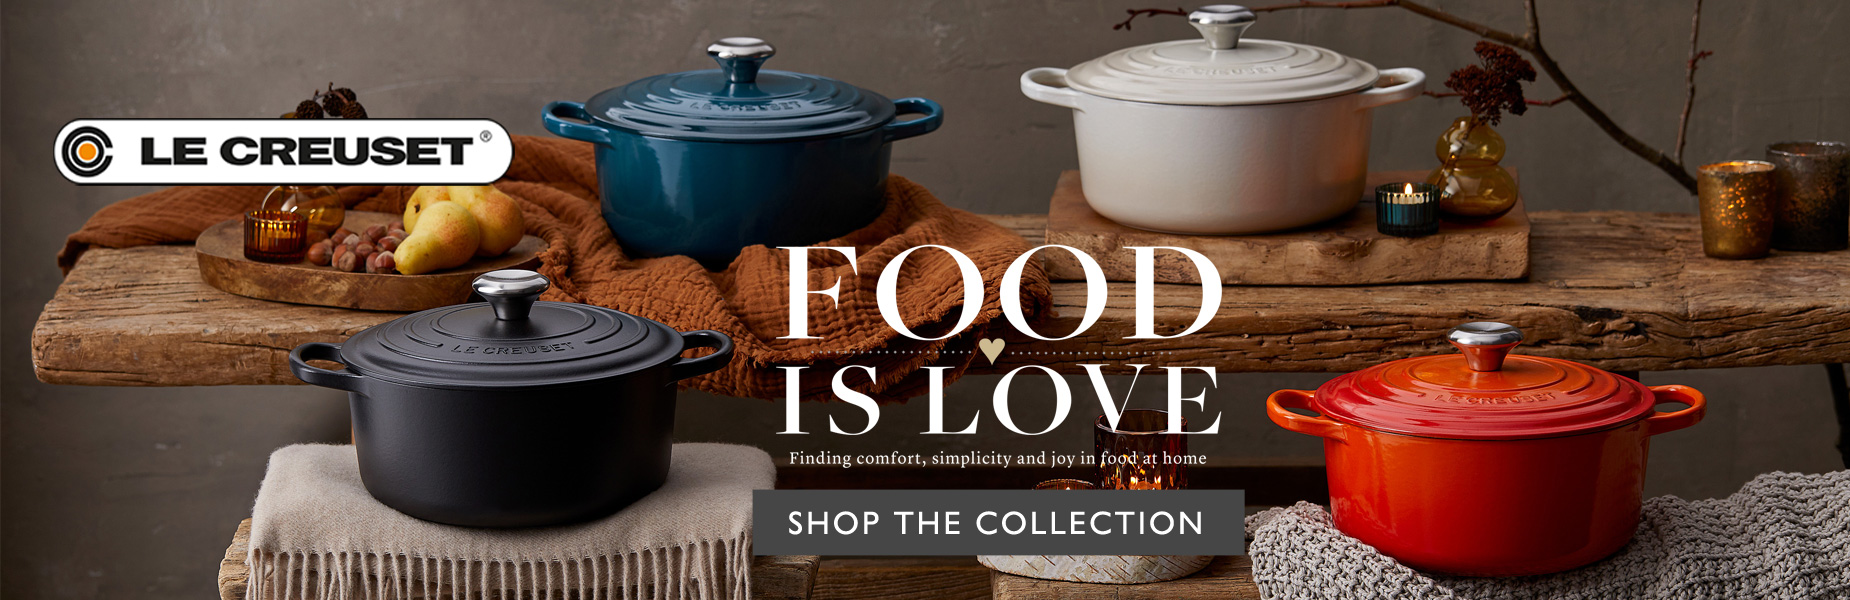 Le Creuset Food is Love - Shop the Collection